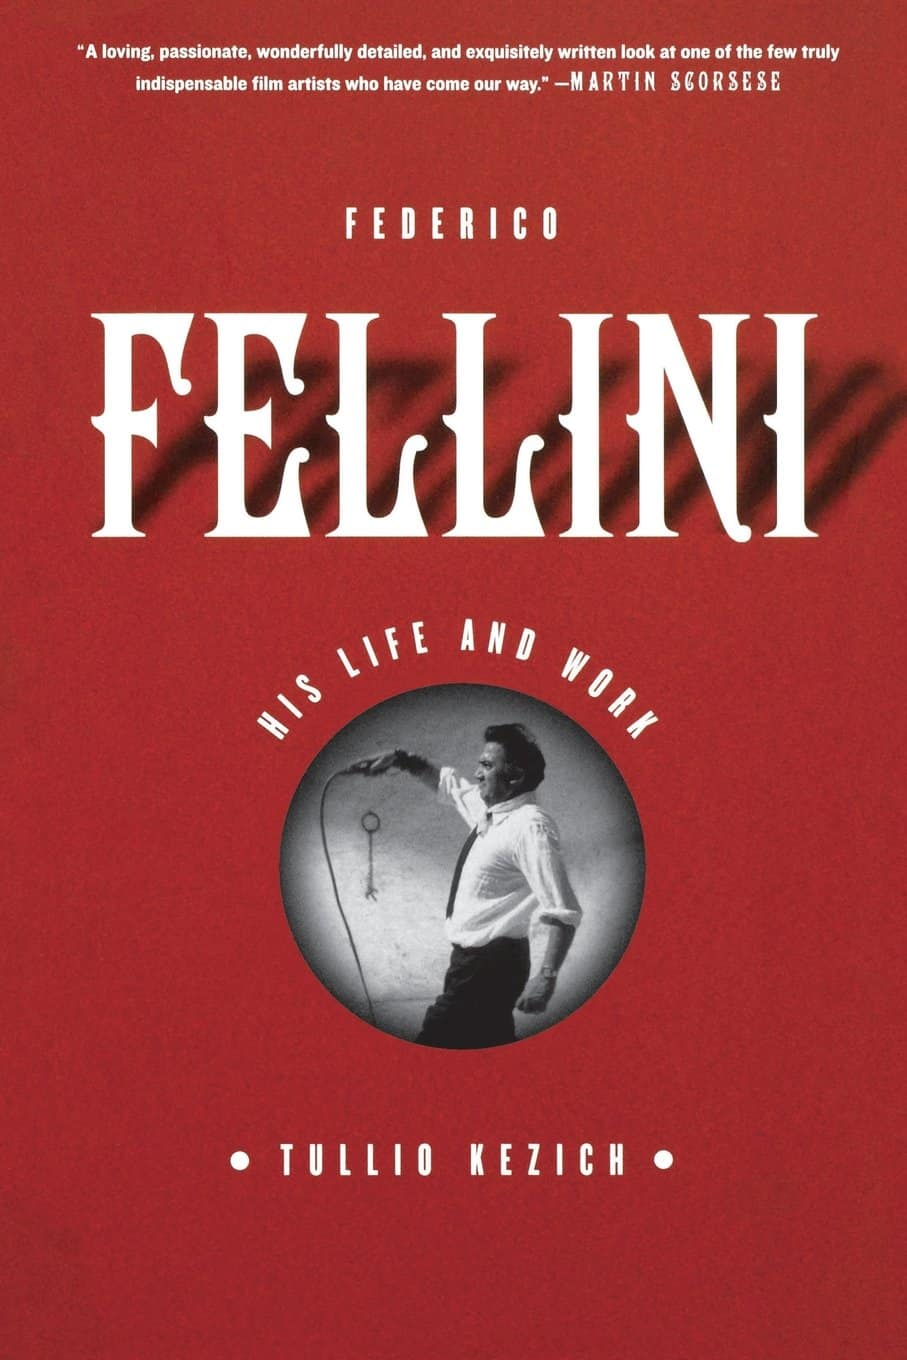 Federico Fellini - His Life and Work